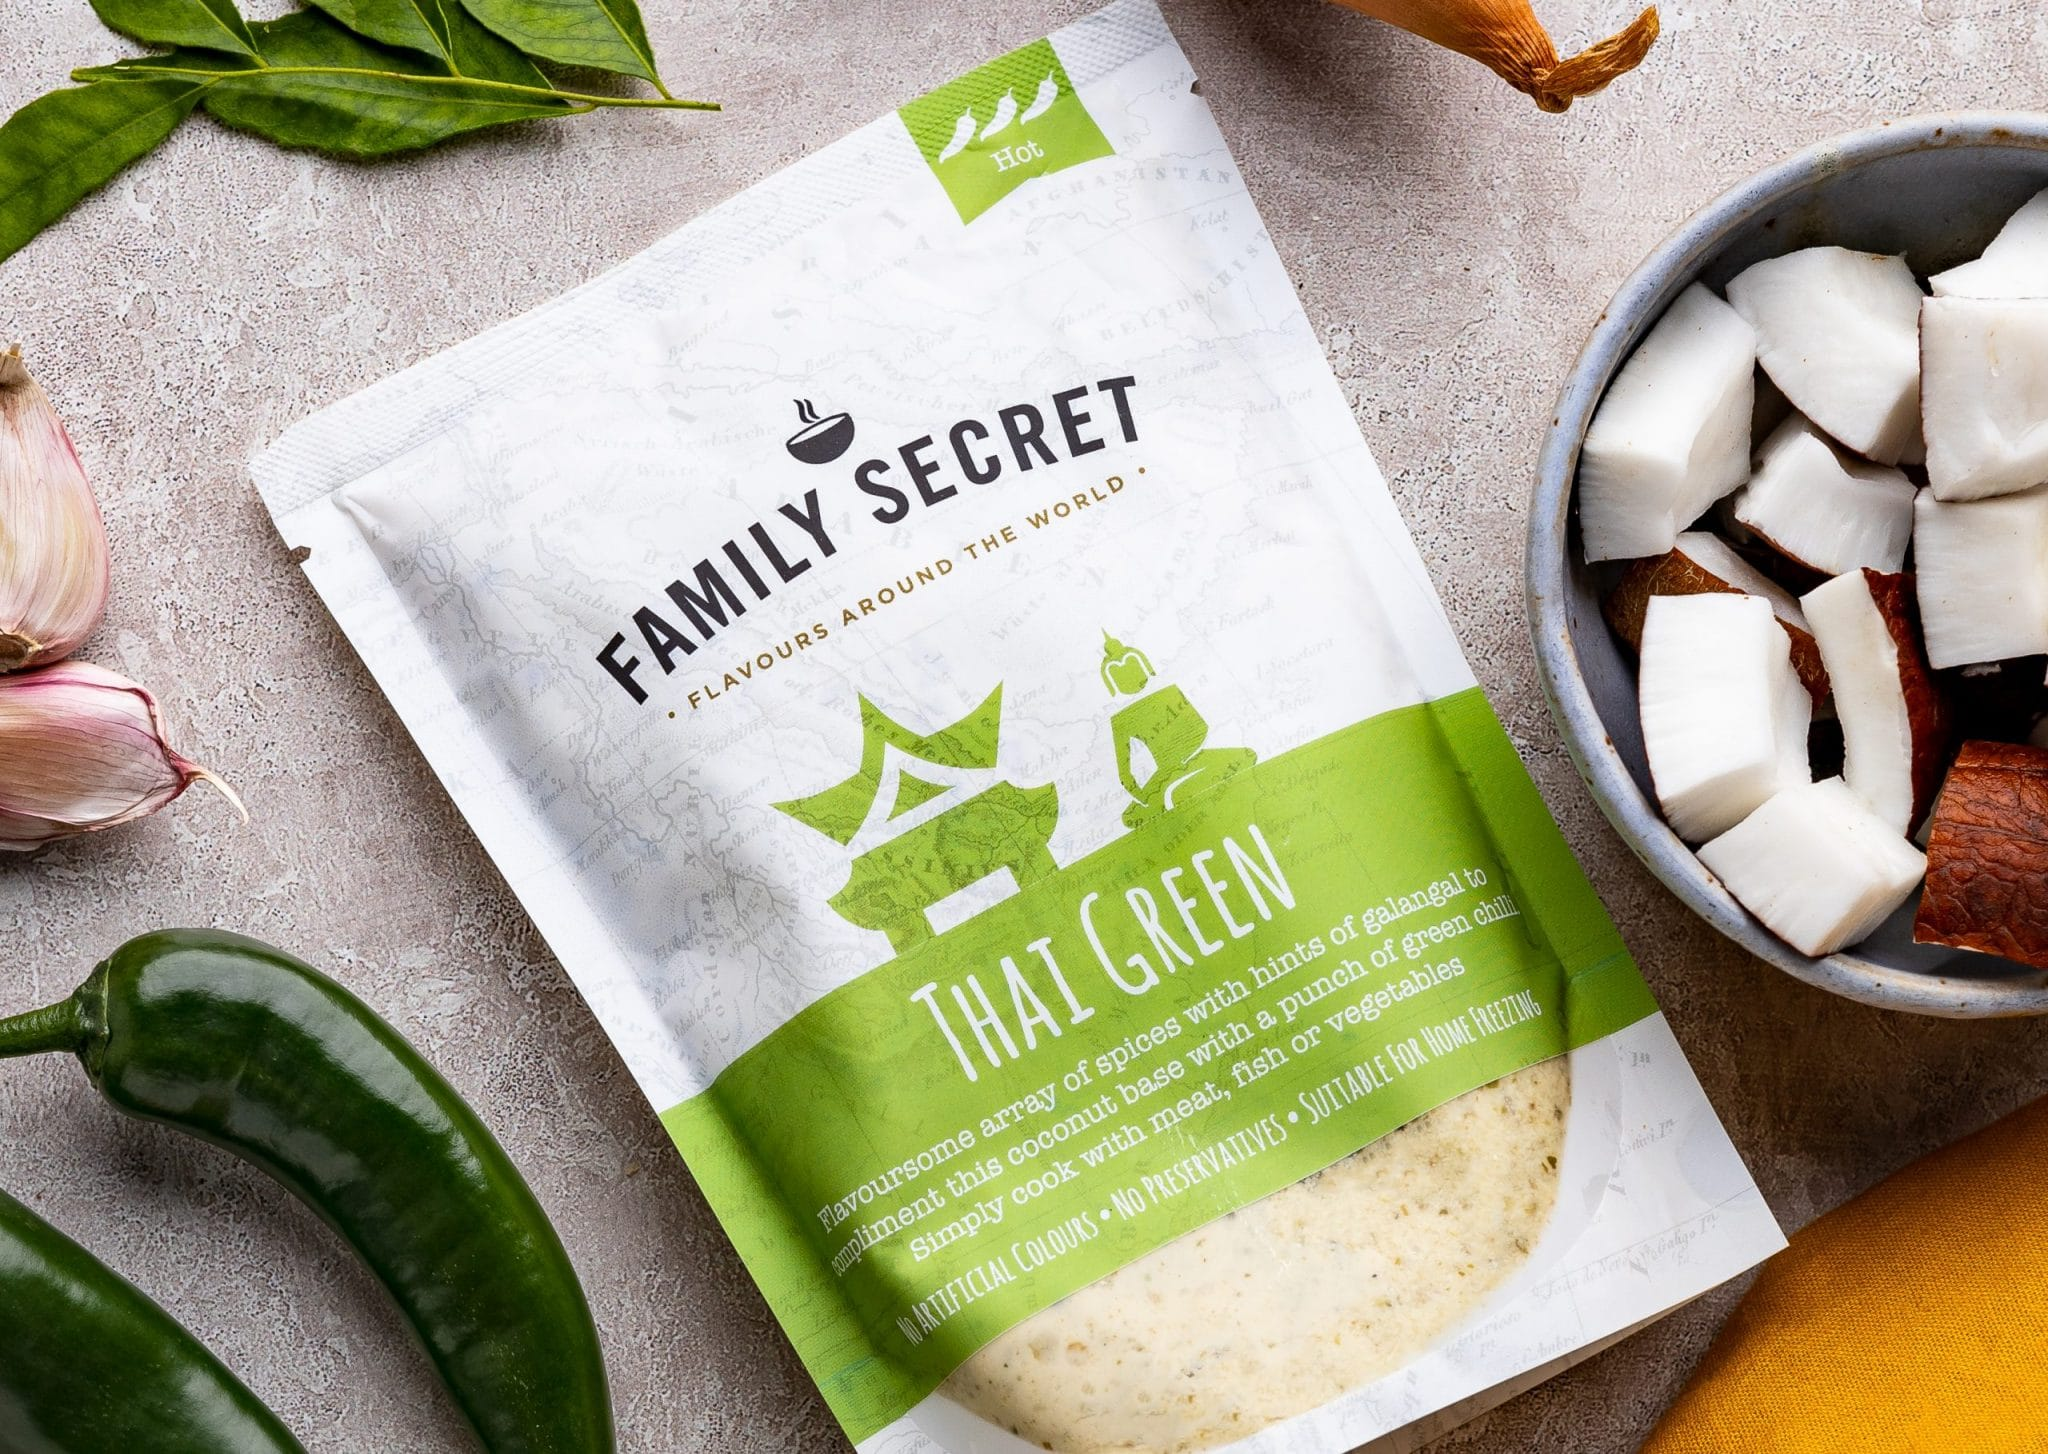 Cooking with green thai